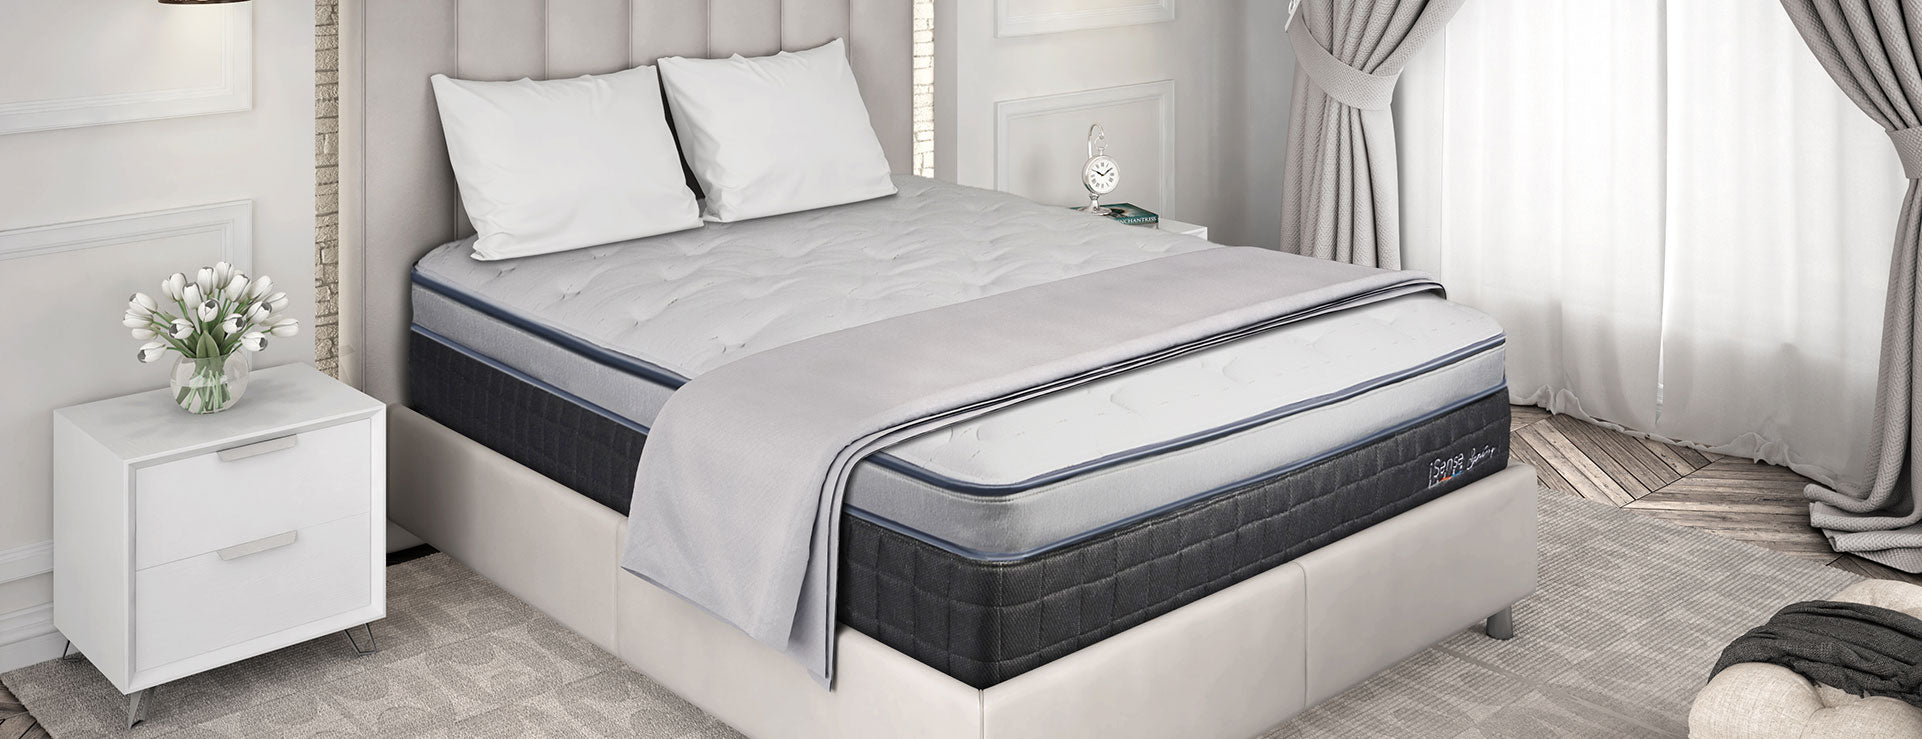 COMFORT CONTROL Spring Mattress - California King Flex Head